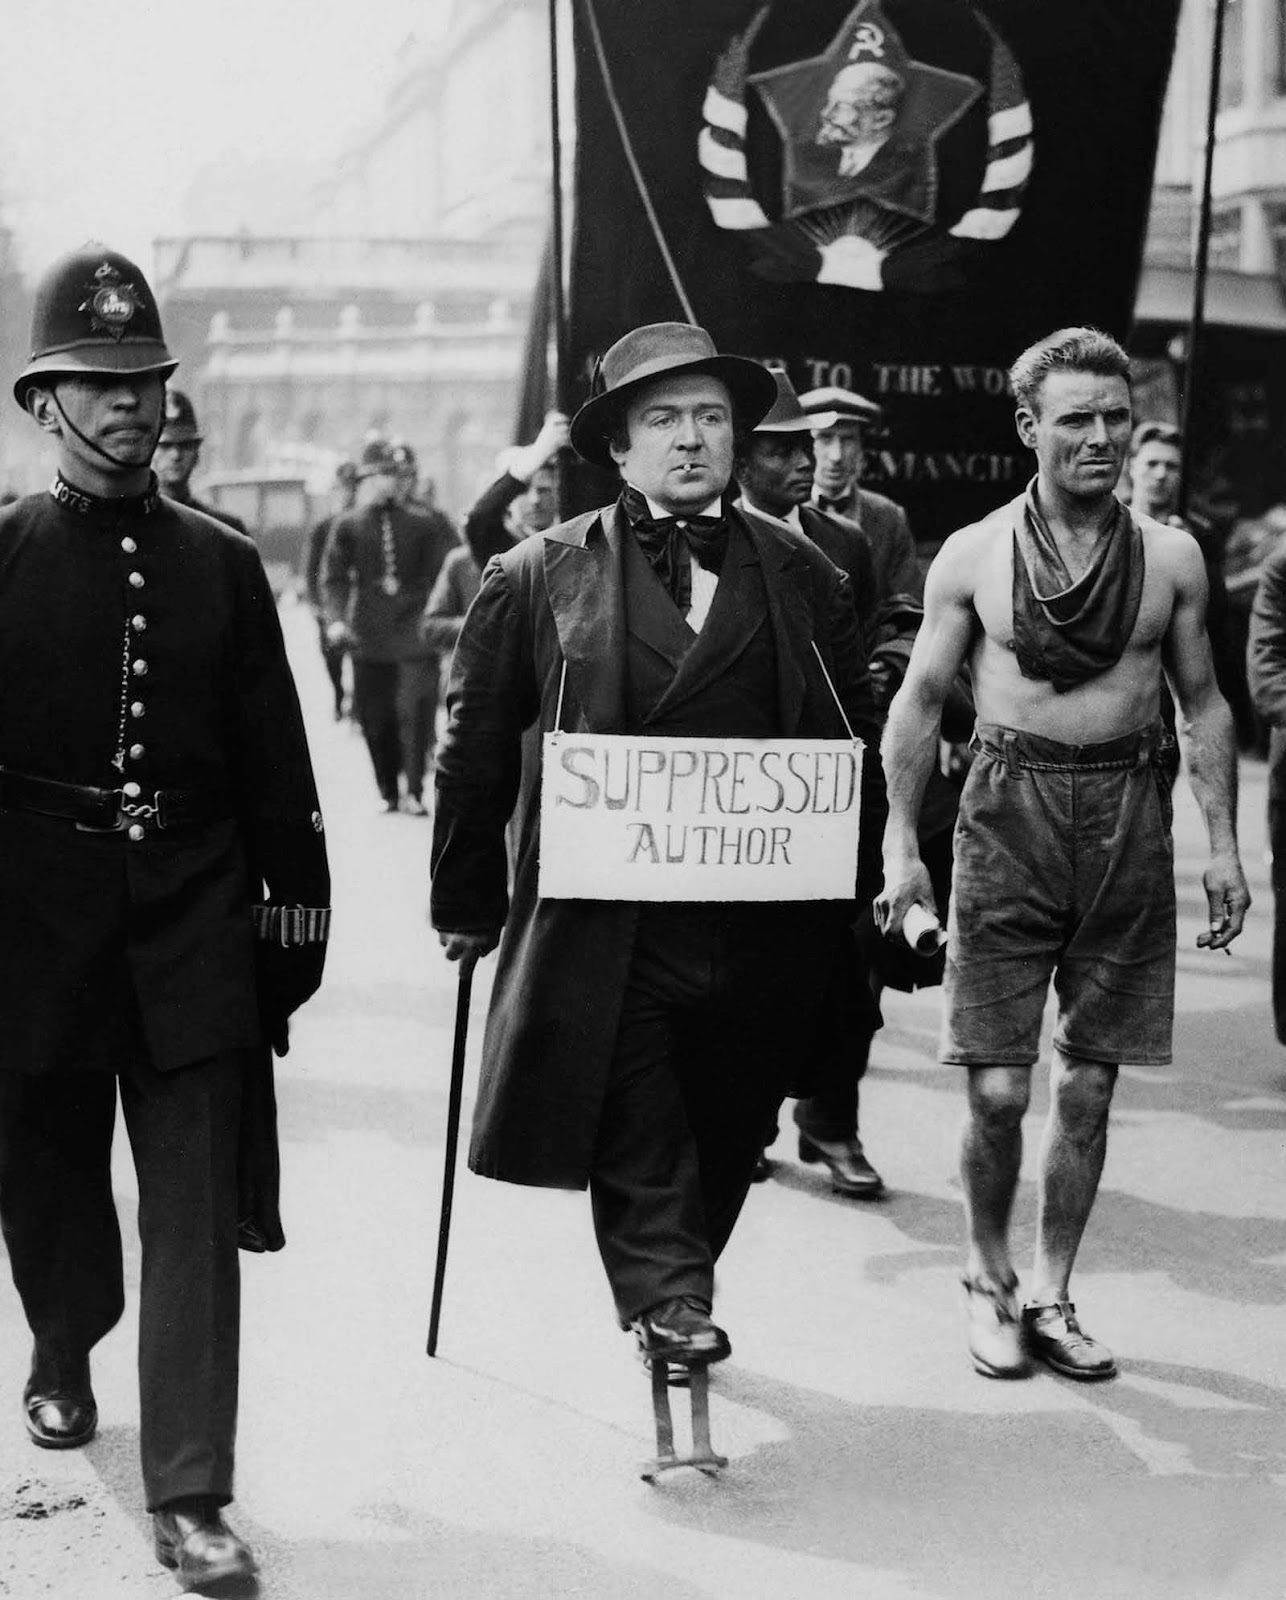 A Communist demonstration in England. 1928.